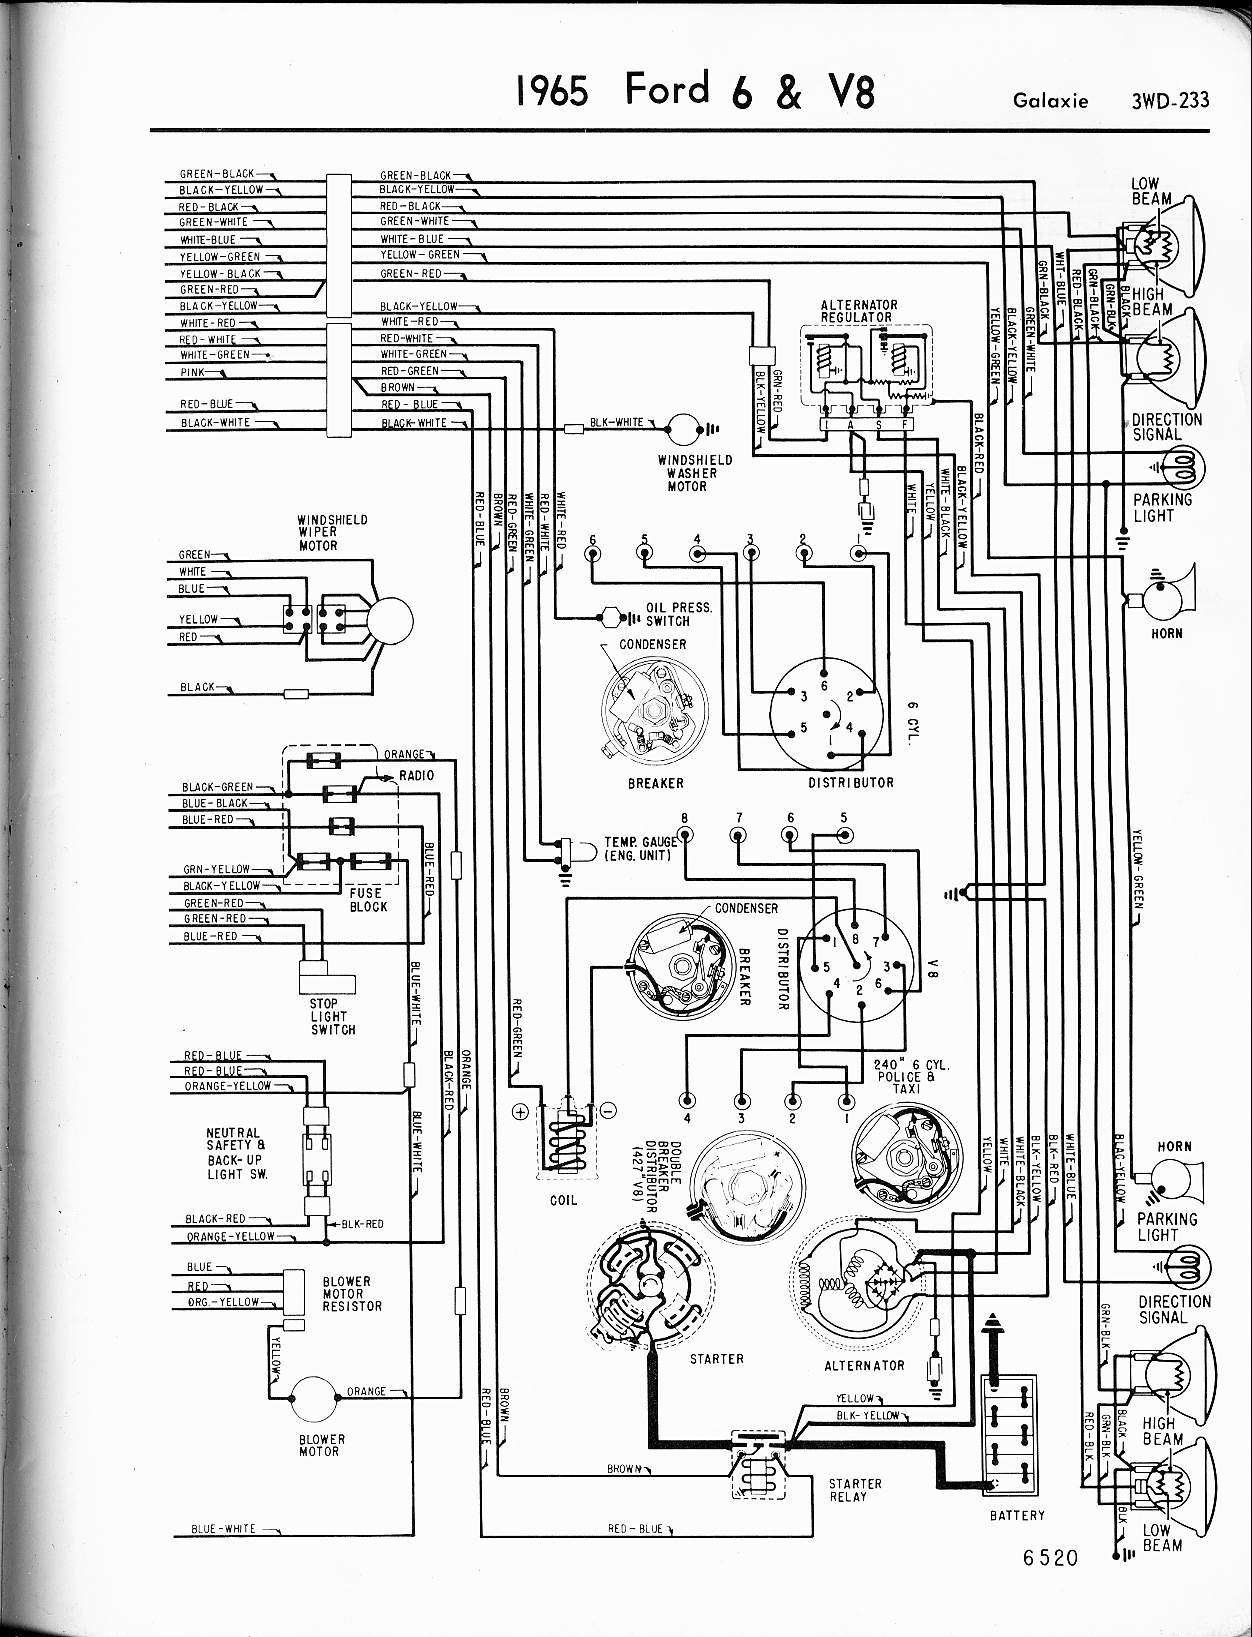 Fantastic 64 Cj5 Wiring Diagram Wiring Diagram Database Wiring Cloud Hisonuggs Outletorg